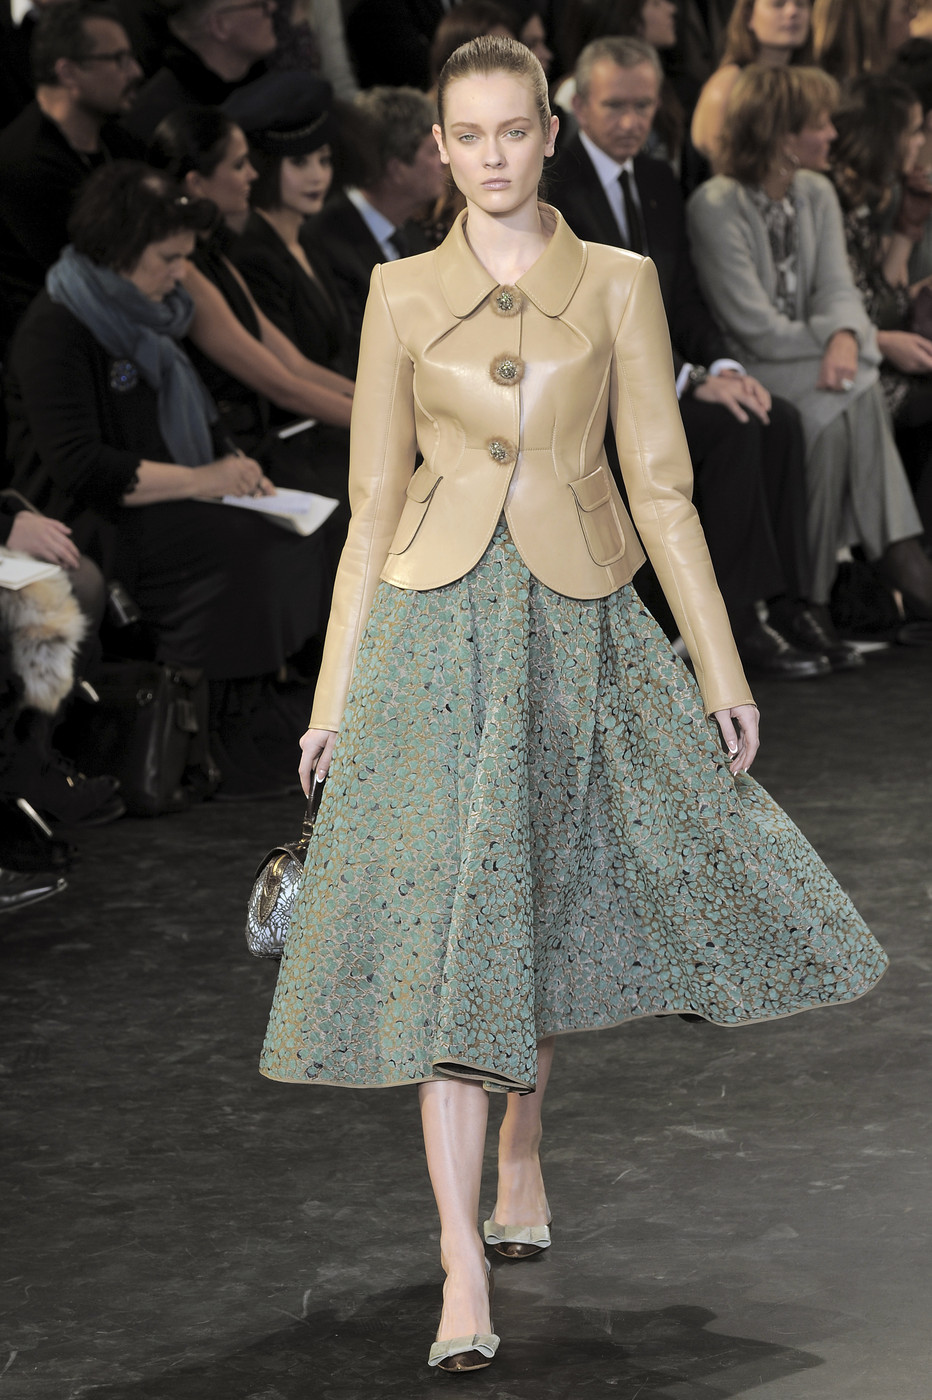 Louis Vuitton Fall/Winter 2010 (and my favourite Vuitton collection ever) via fashioned by love british fashion blog